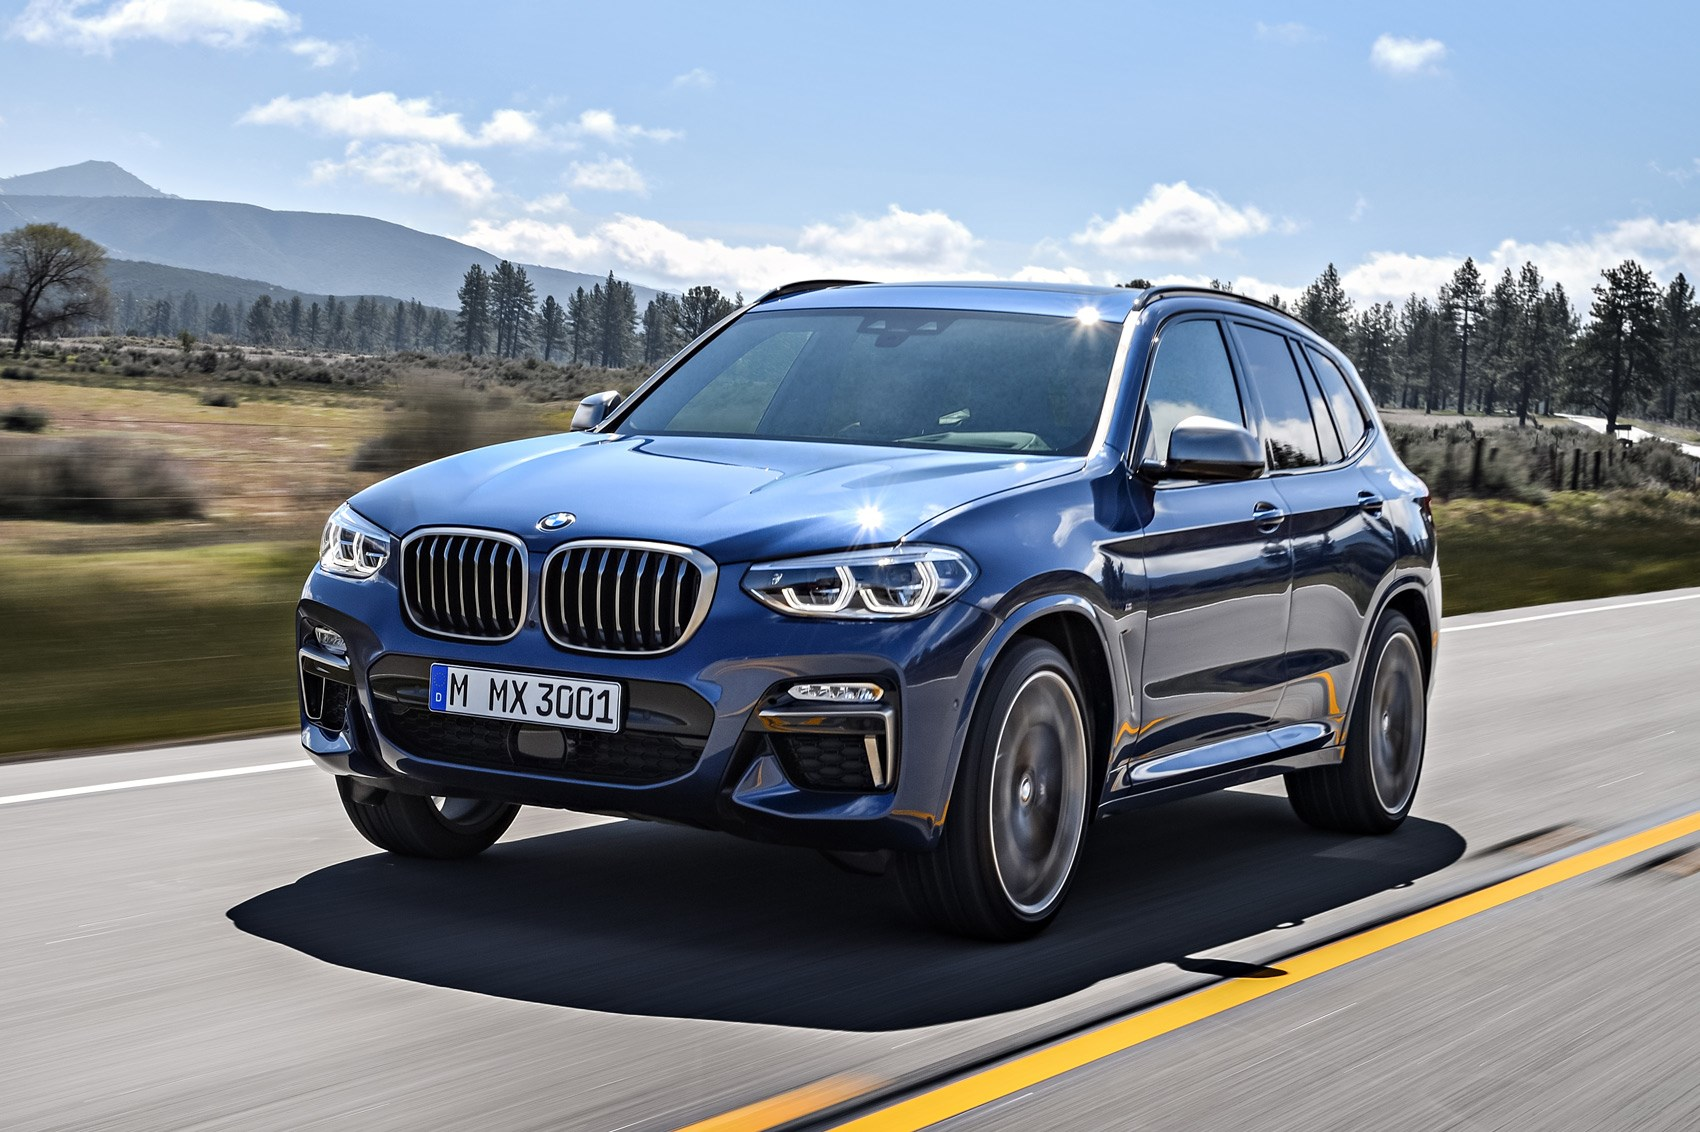 new bmw x3 suv revealed munich 39 s photocopier is working. Black Bedroom Furniture Sets. Home Design Ideas